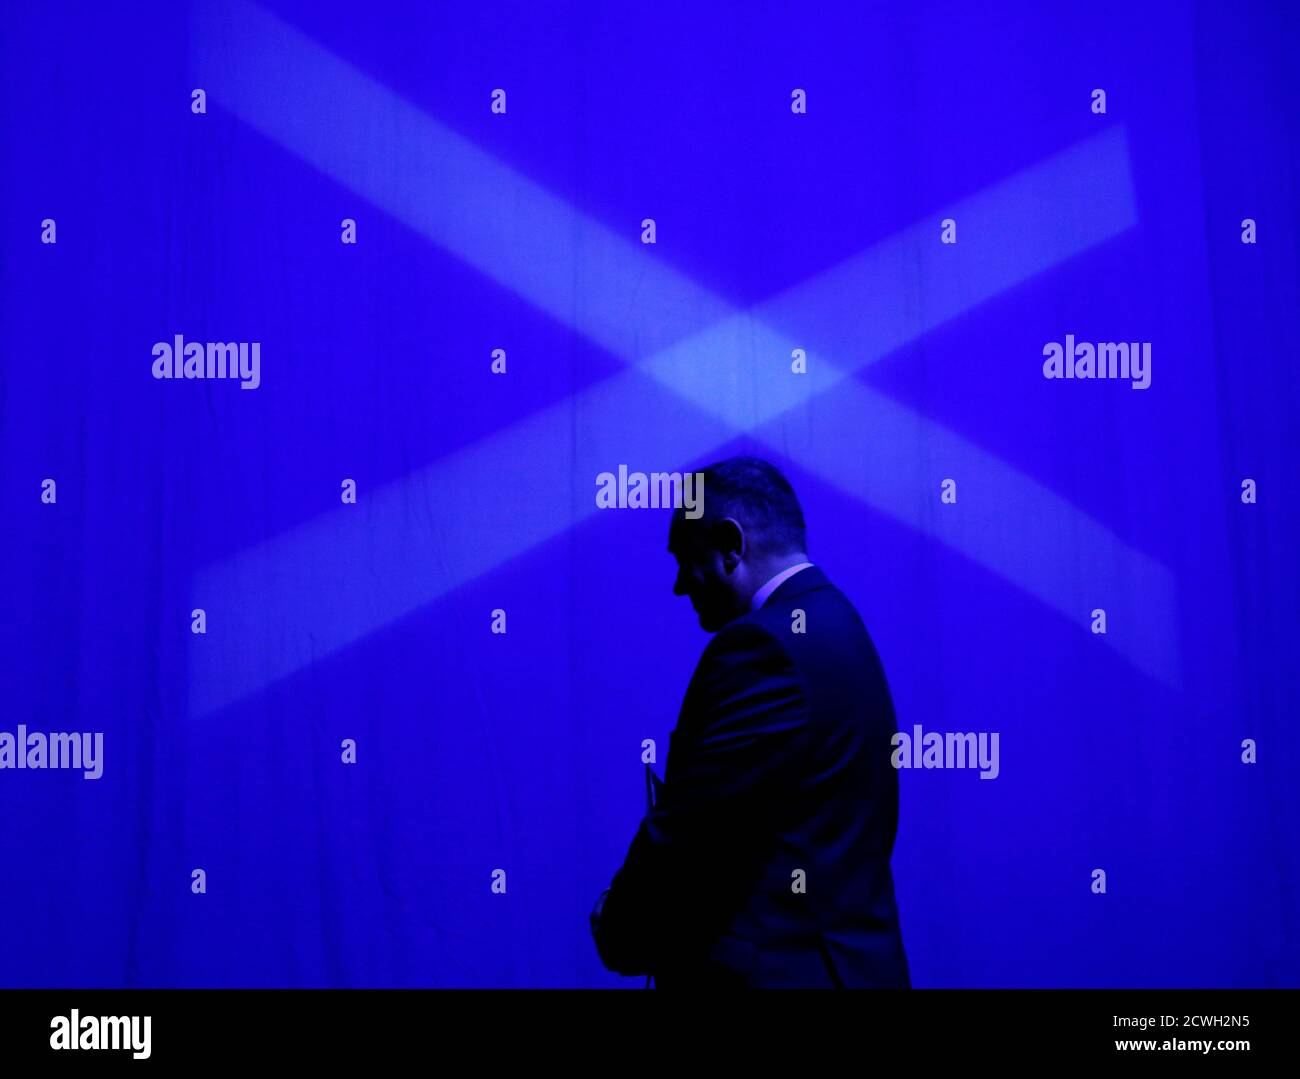 Scotland's First Minister Alex Salmond leaves the stage at the SNP Spring Conference in Aberdeen, Scotland April 11, 2014. REUTERS/Russell Cheyne   (BRITAIN - Tags: POLITICS TPX IMAGES OF THE DAY) Stock Photo